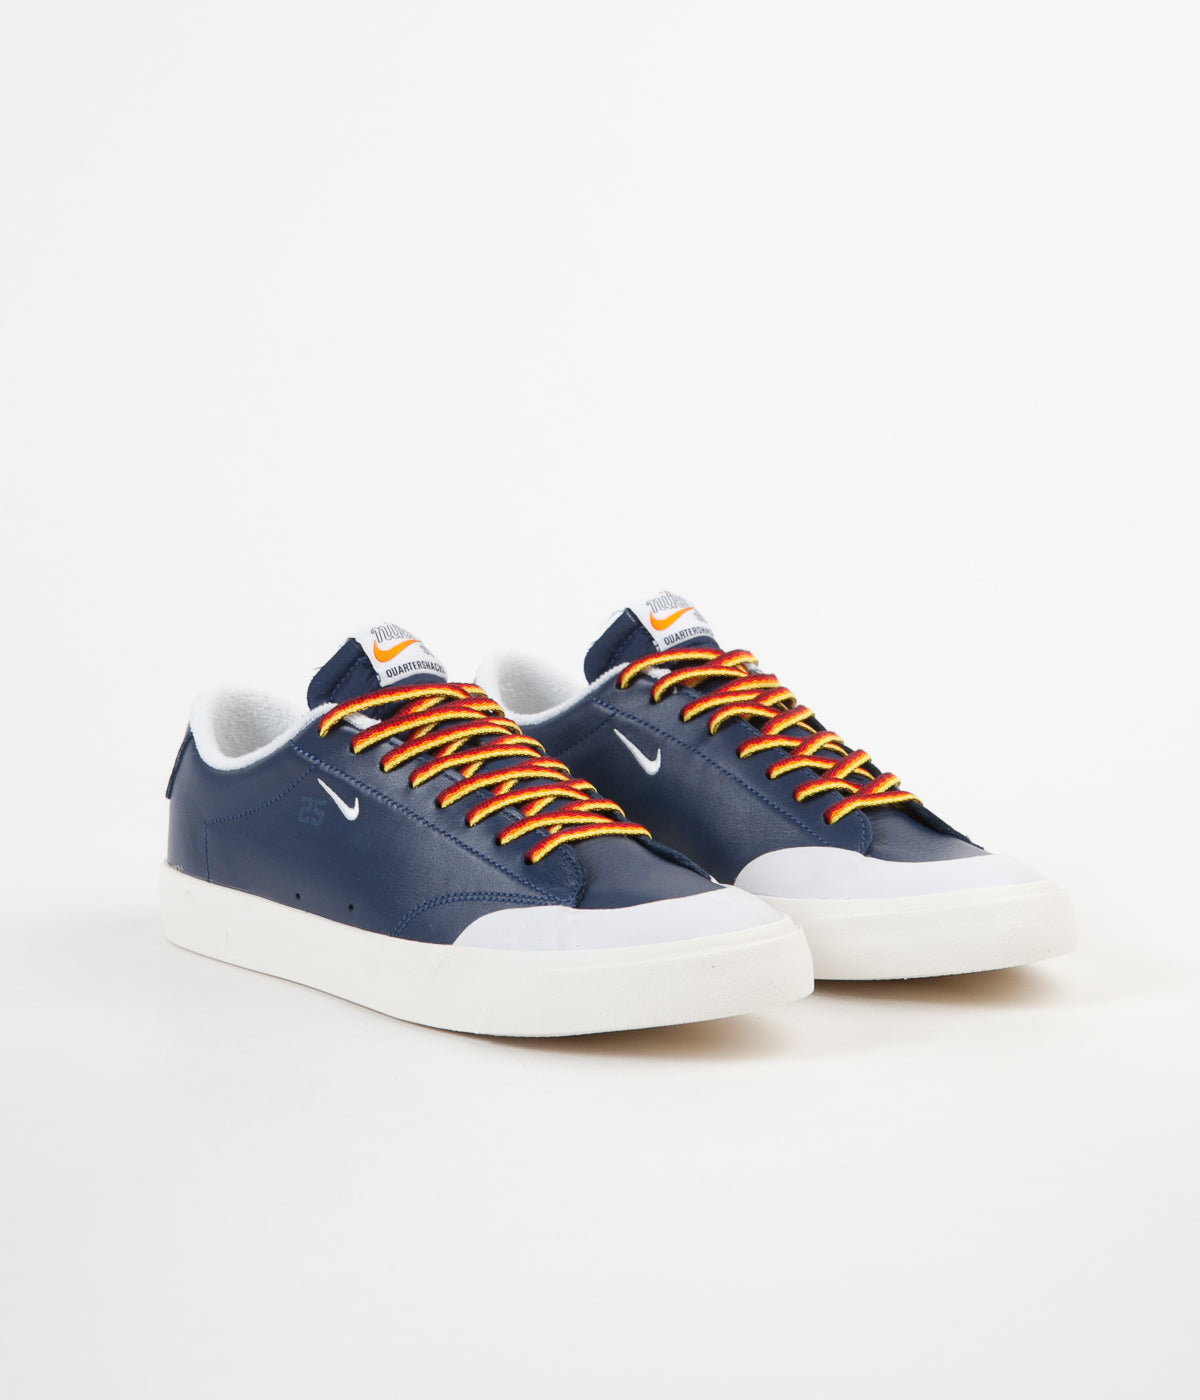 c6bb445915c5 ... Nike SB x Quartersnacks Blazer Low XT Shoes - Navy   White - Sail ...